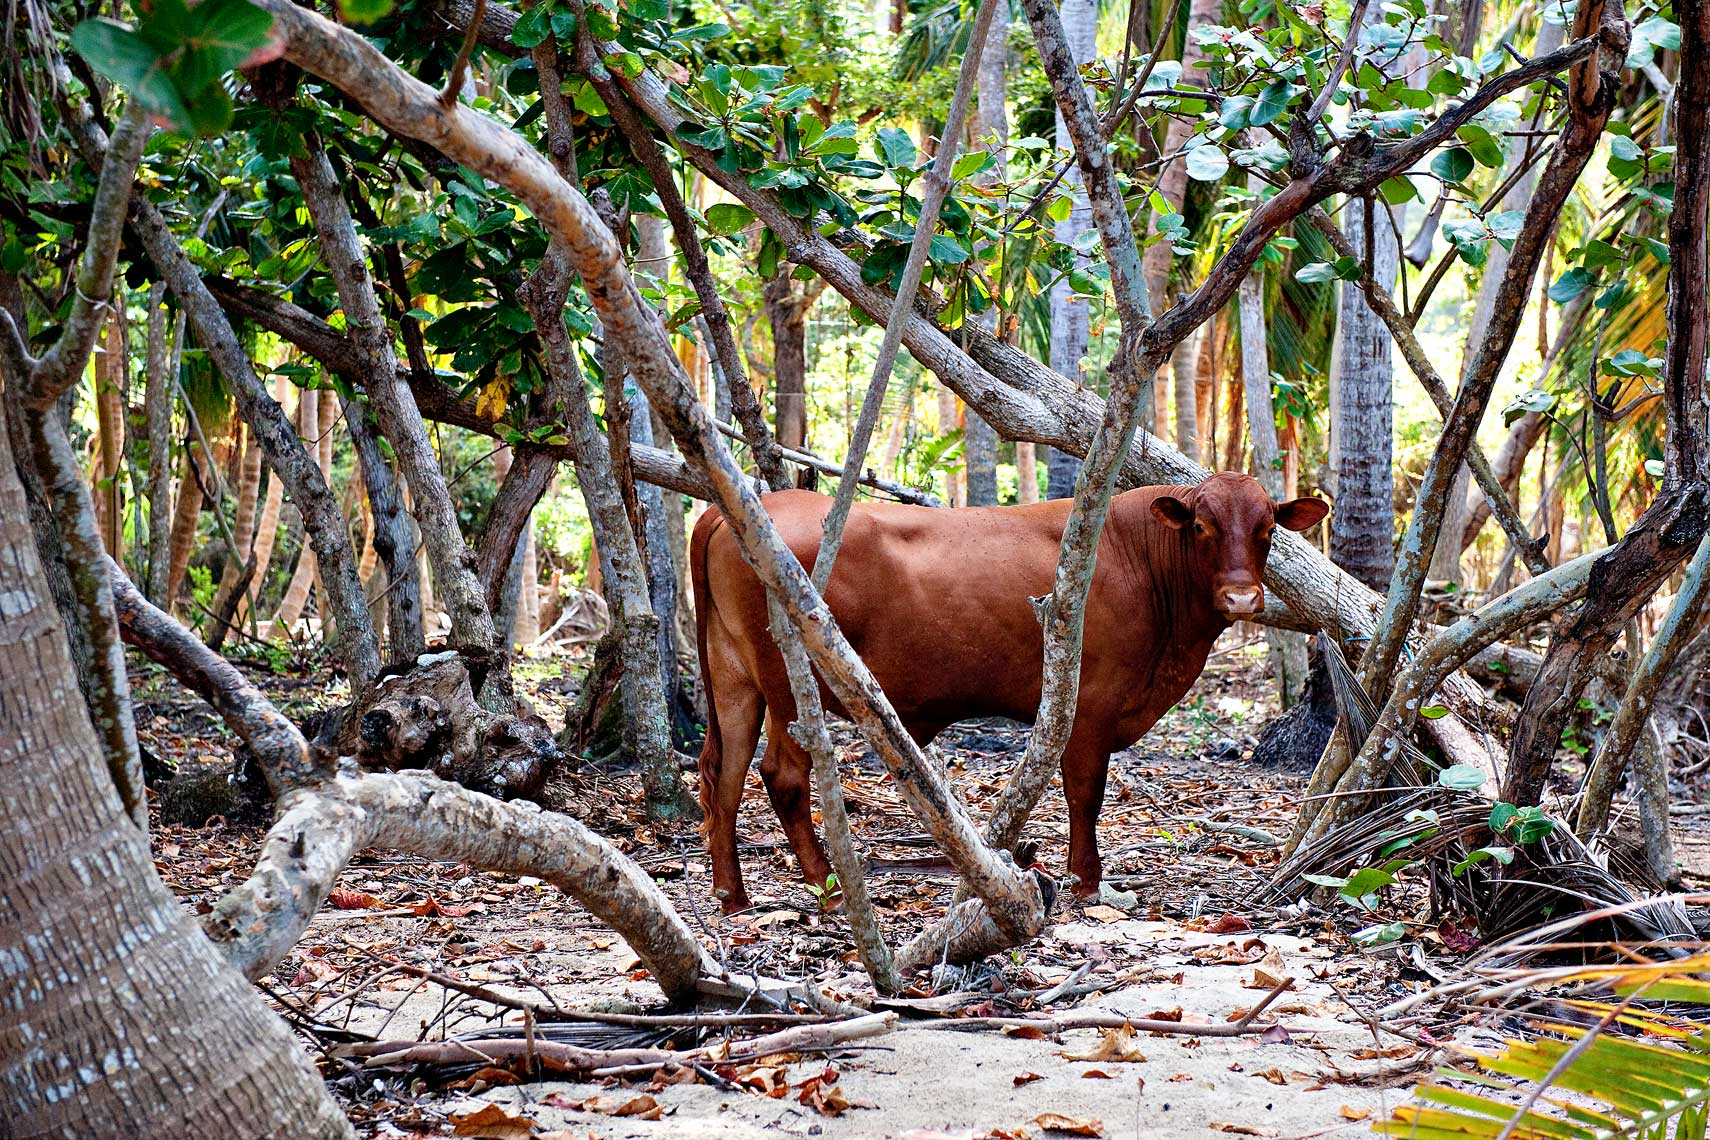 Cow among trees on beach in Tortola, British Virgin Islands.